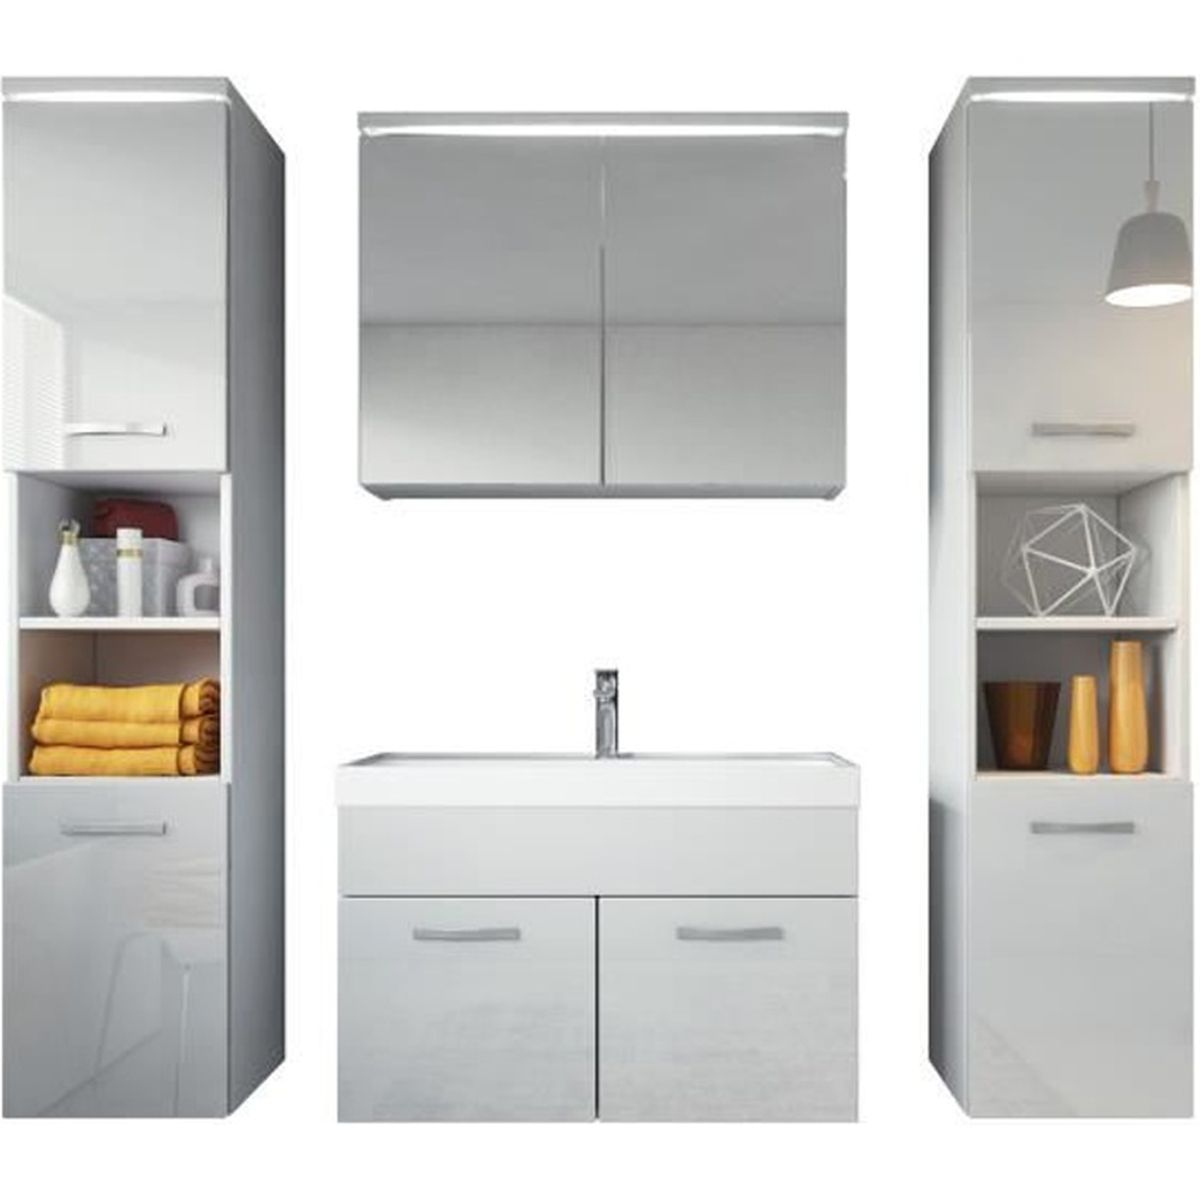 meuble de salle de bain paso xl armoire de rangement meuble lavabo vier meuble lavabo blanc. Black Bedroom Furniture Sets. Home Design Ideas